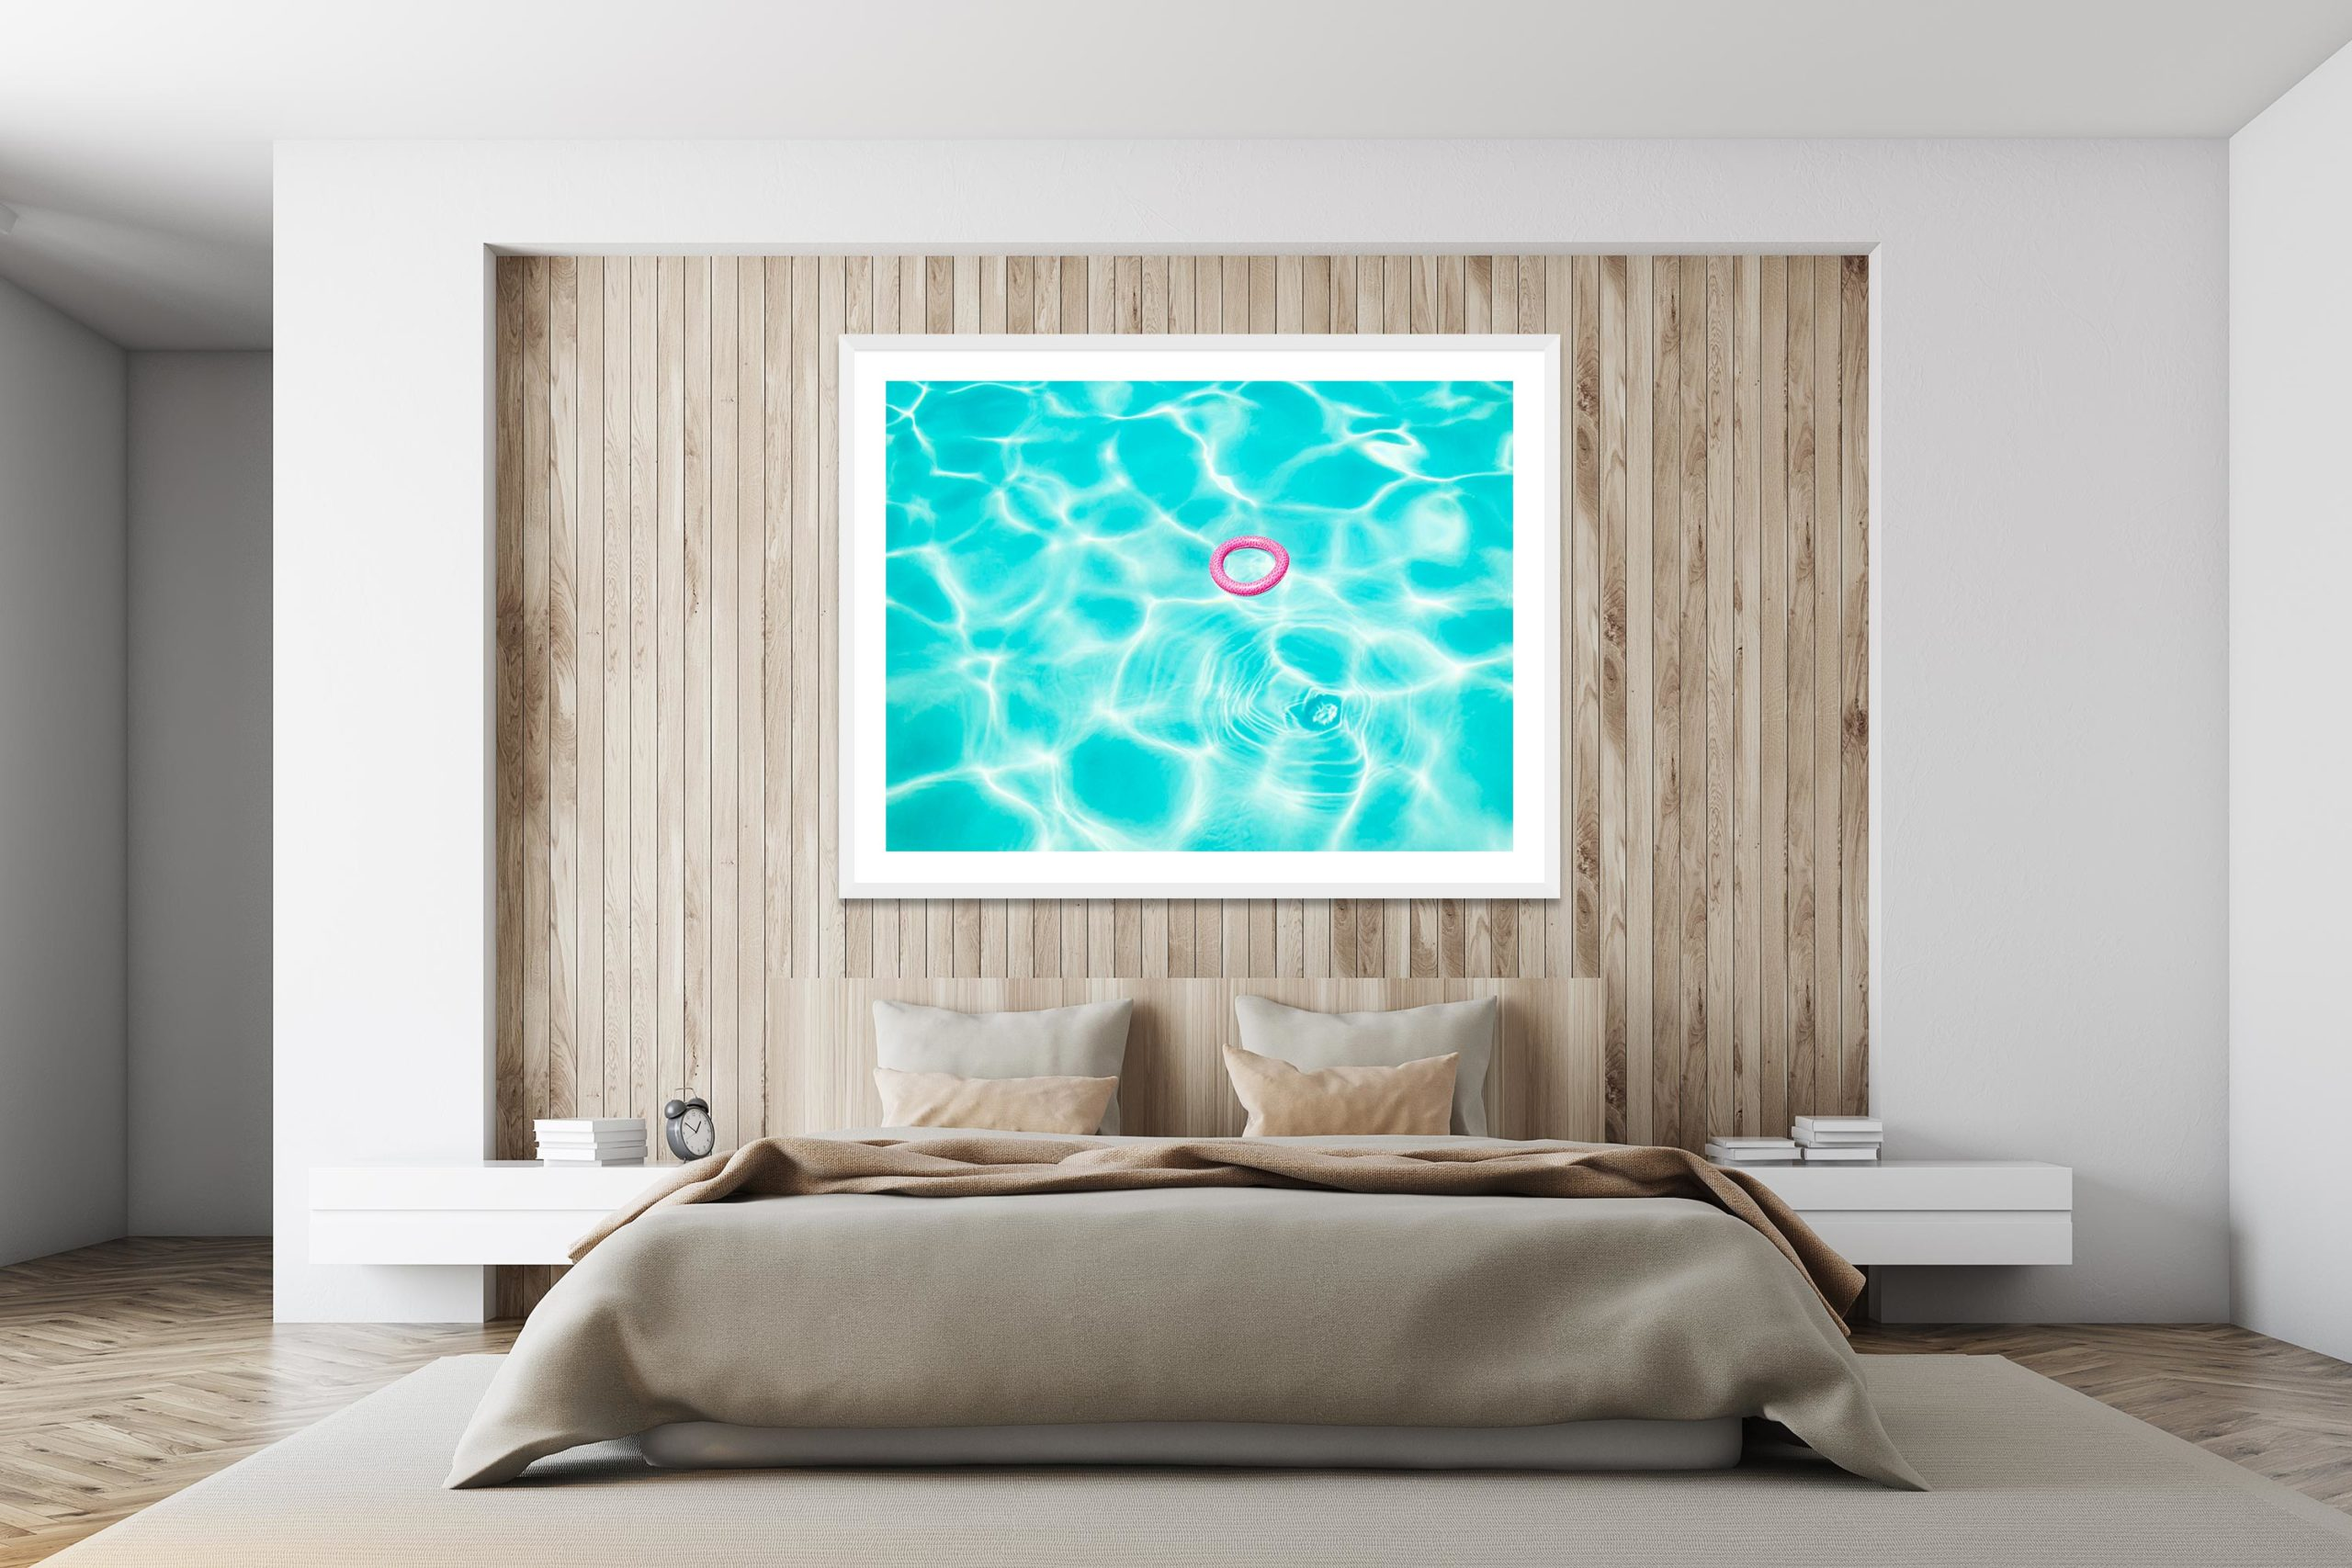 Pink In Blue - White Frame - I Heart Palm Springs Collection - Fine Art Photography by Toby Dixon